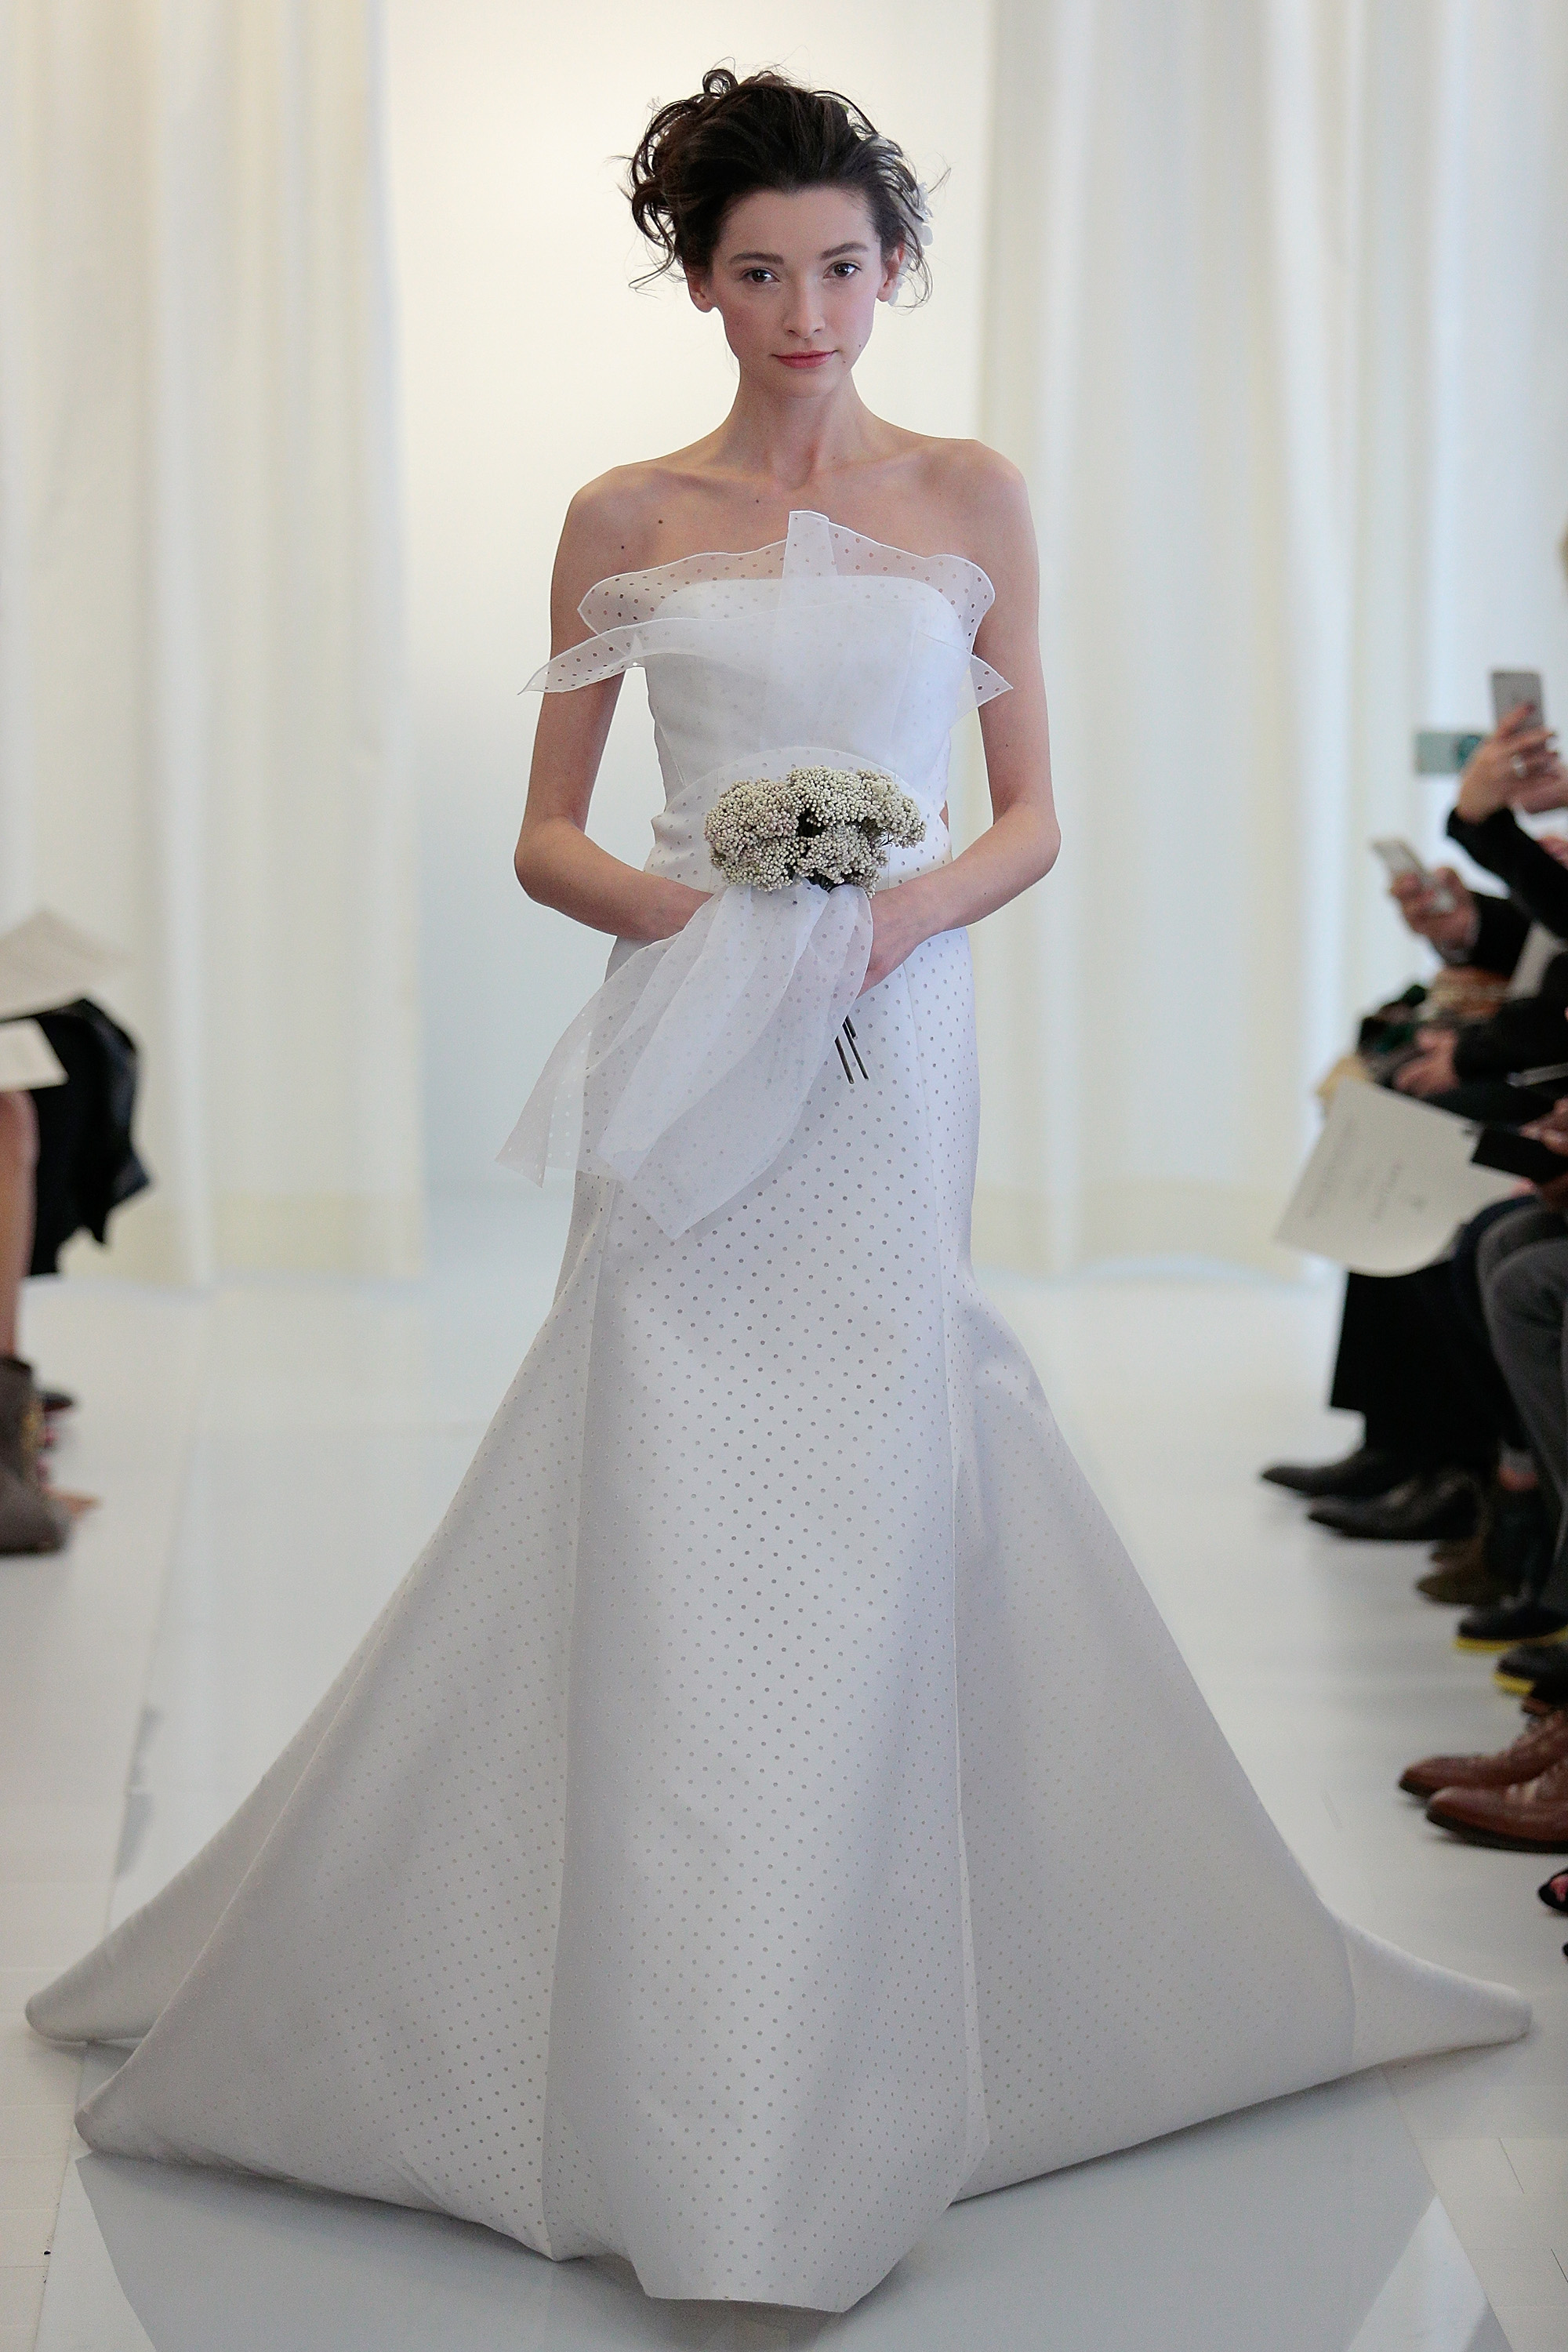 The Best Spring Bridal Gowns